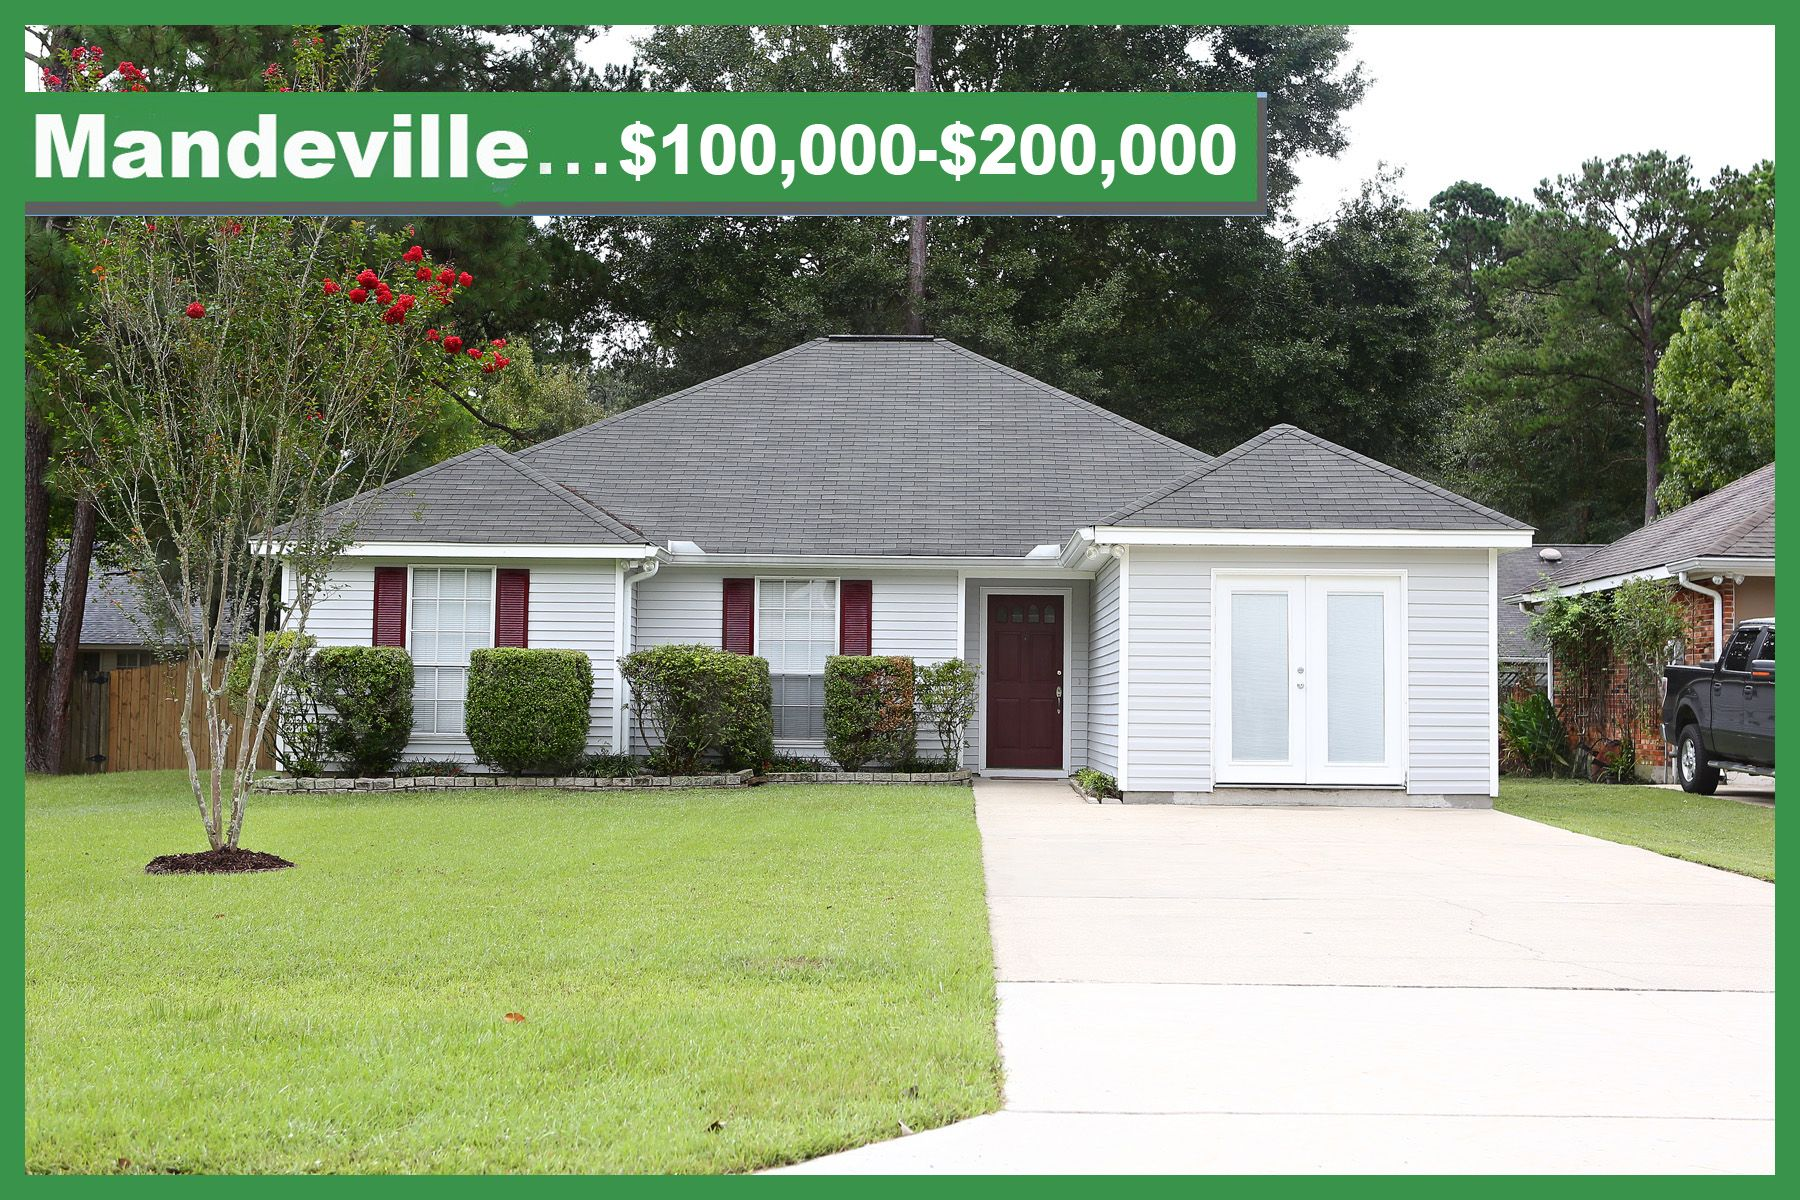 Mandeville Louisiana Real Estate 100 000 200 000 St Tammany Homes Patio Homes Condos Townhouses And More W Real Estate Louisiana Homes La Real Estate